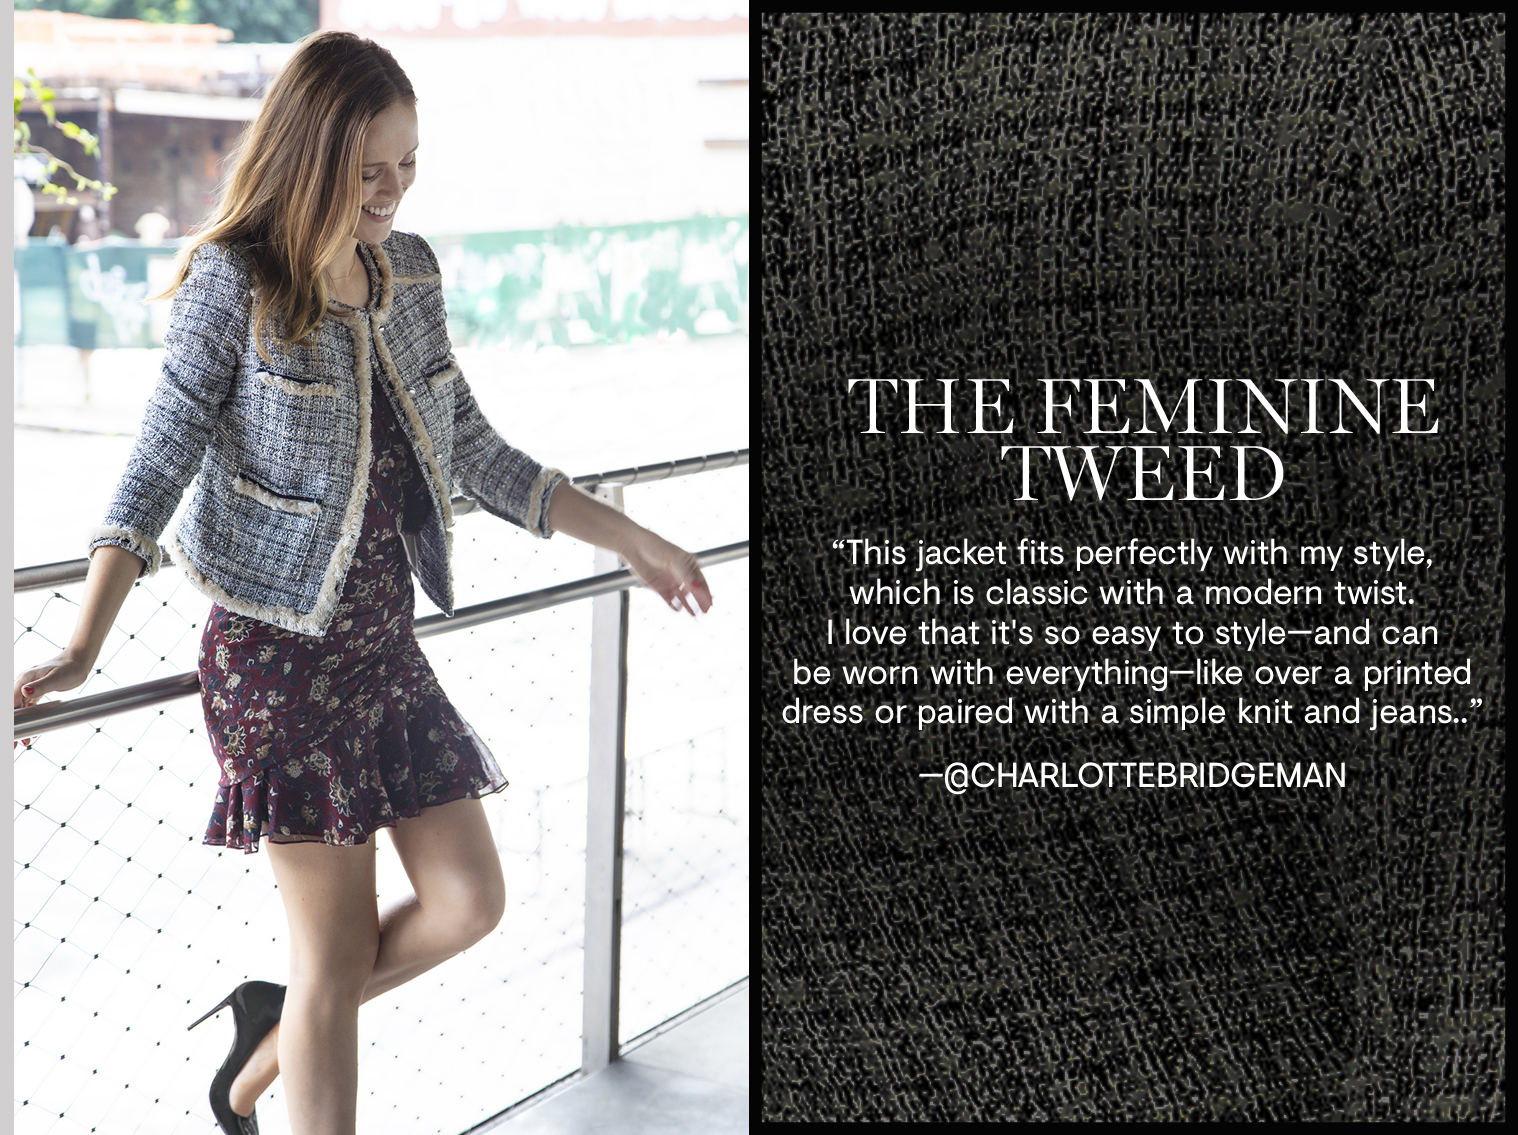 The Feminine Tweed